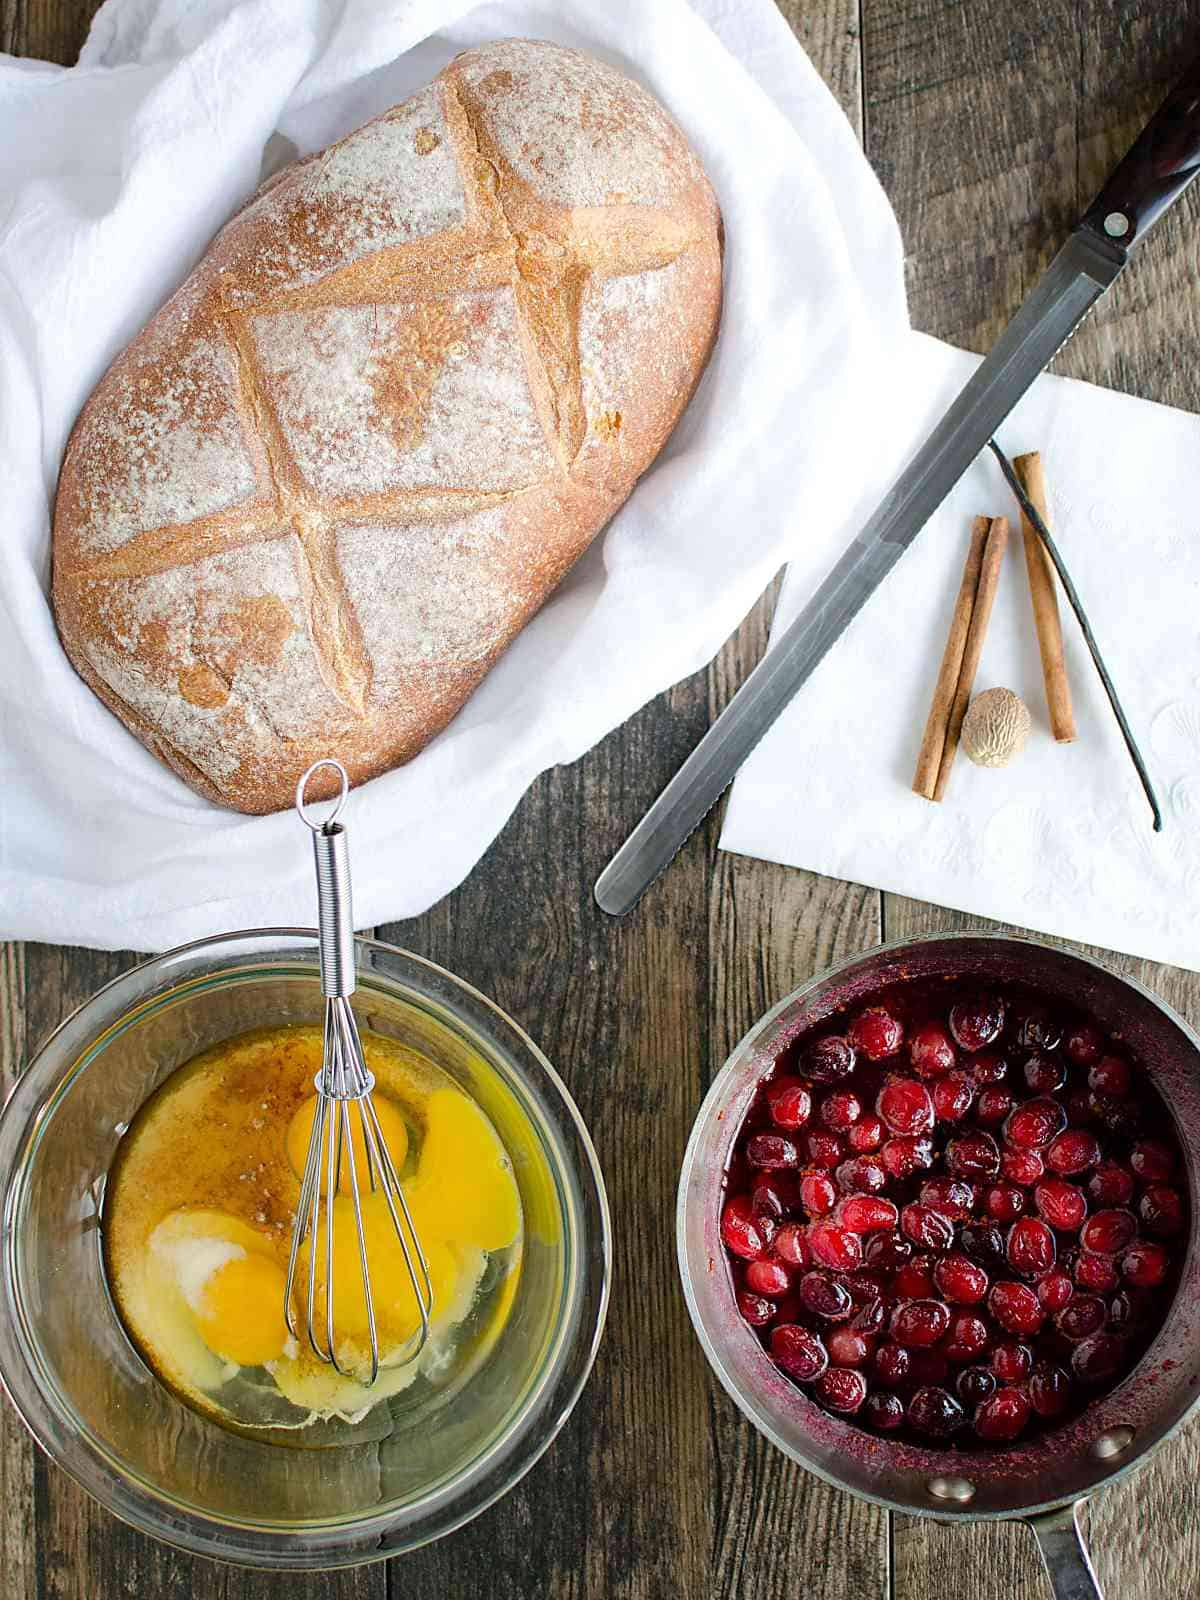 artisan bread, bowl with cracked eggs and egg nog, pan of cranberry syrup.